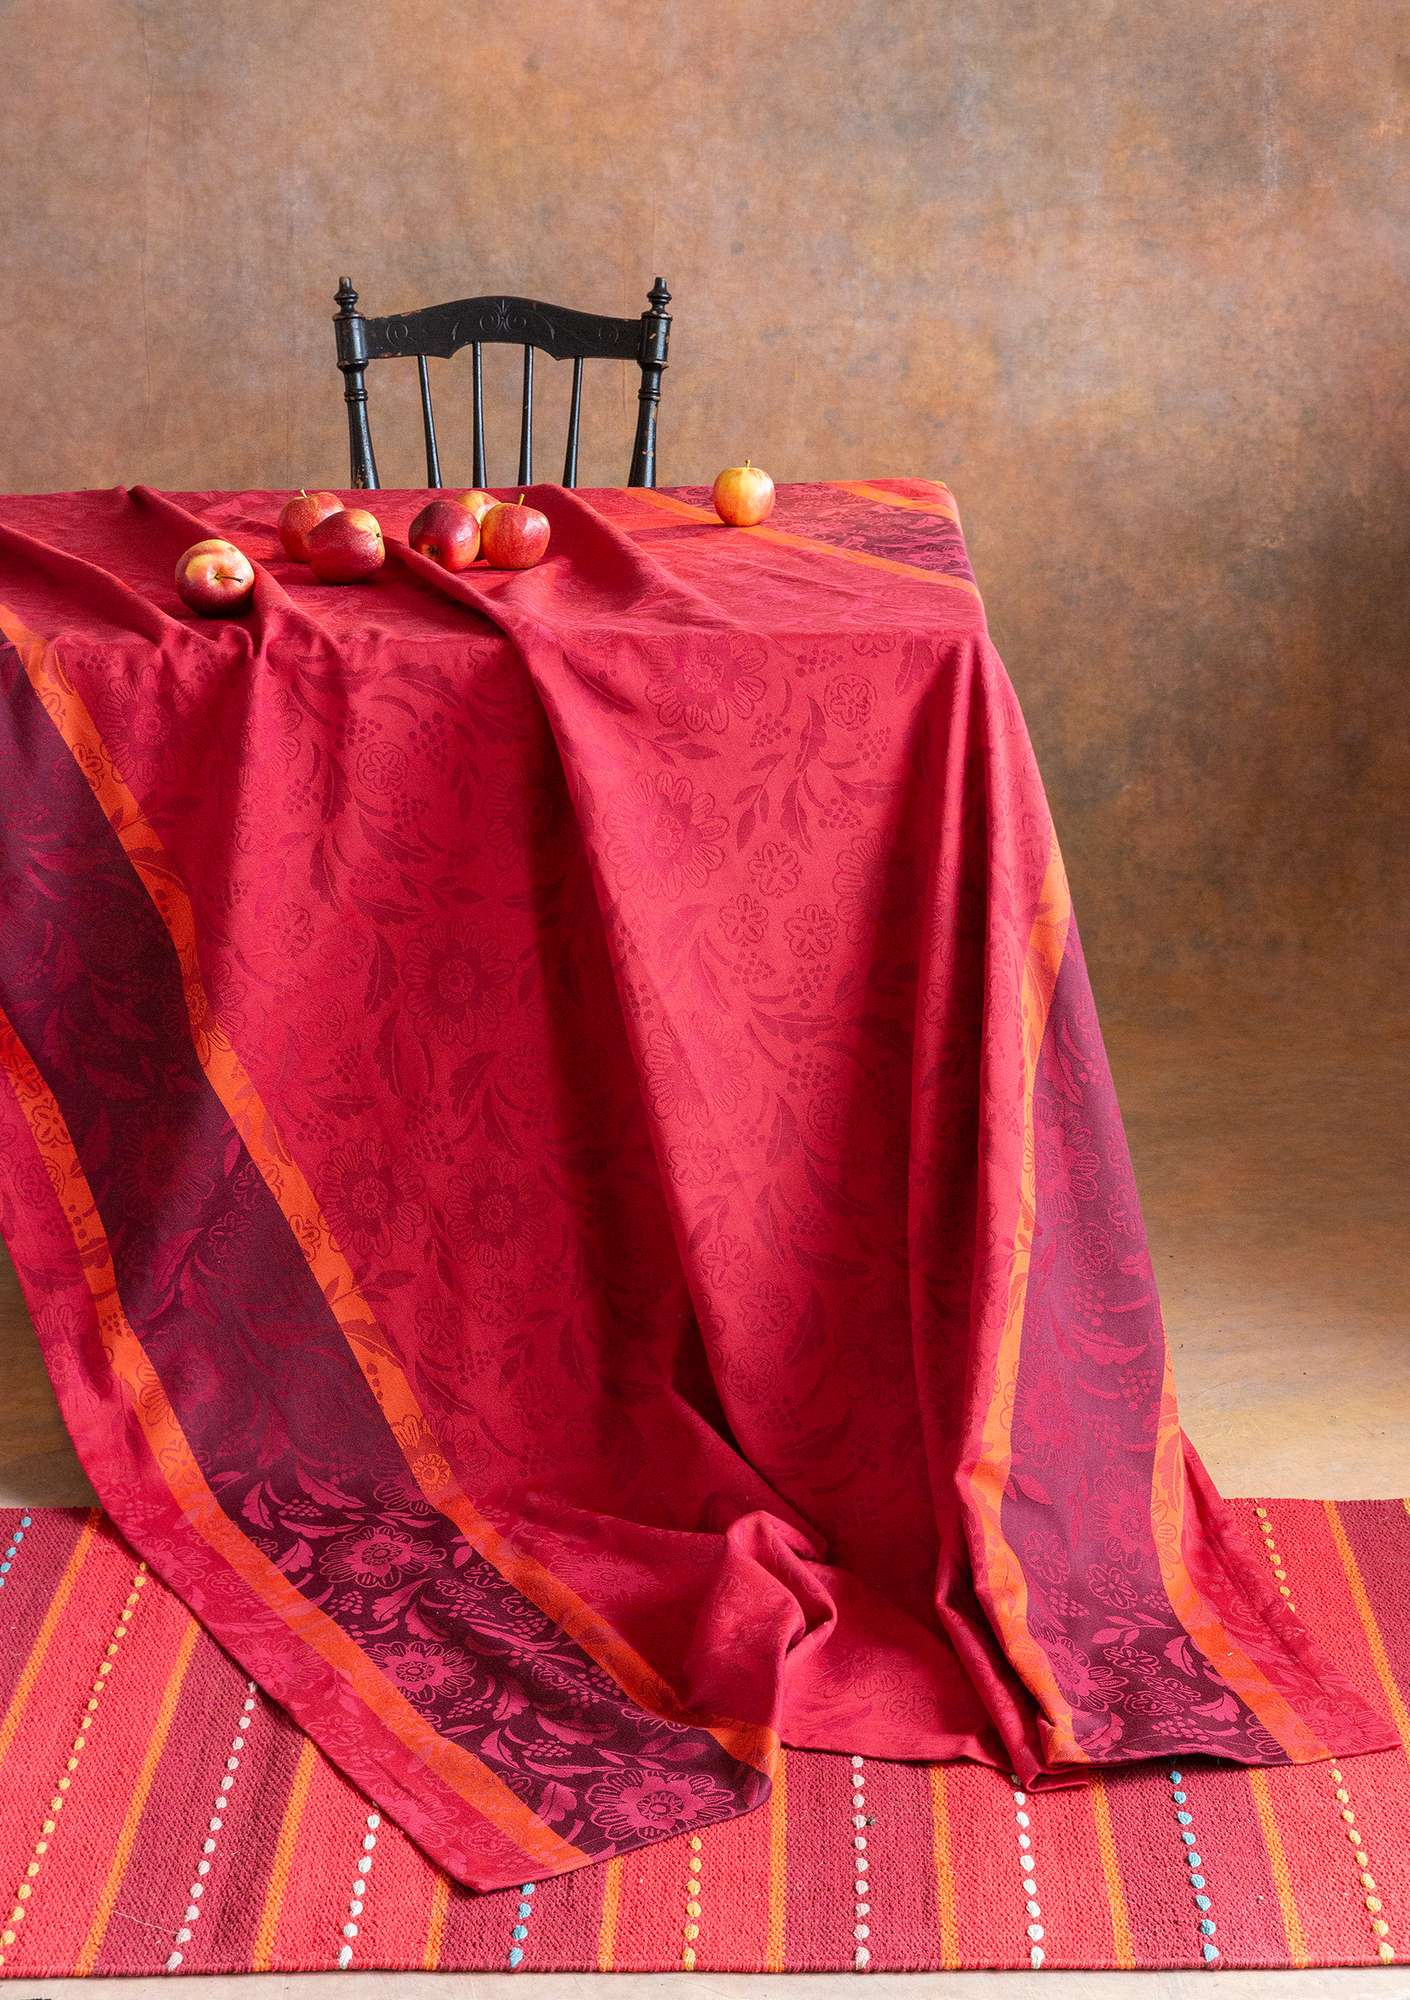 Fjällsippa tablecloth cranberry